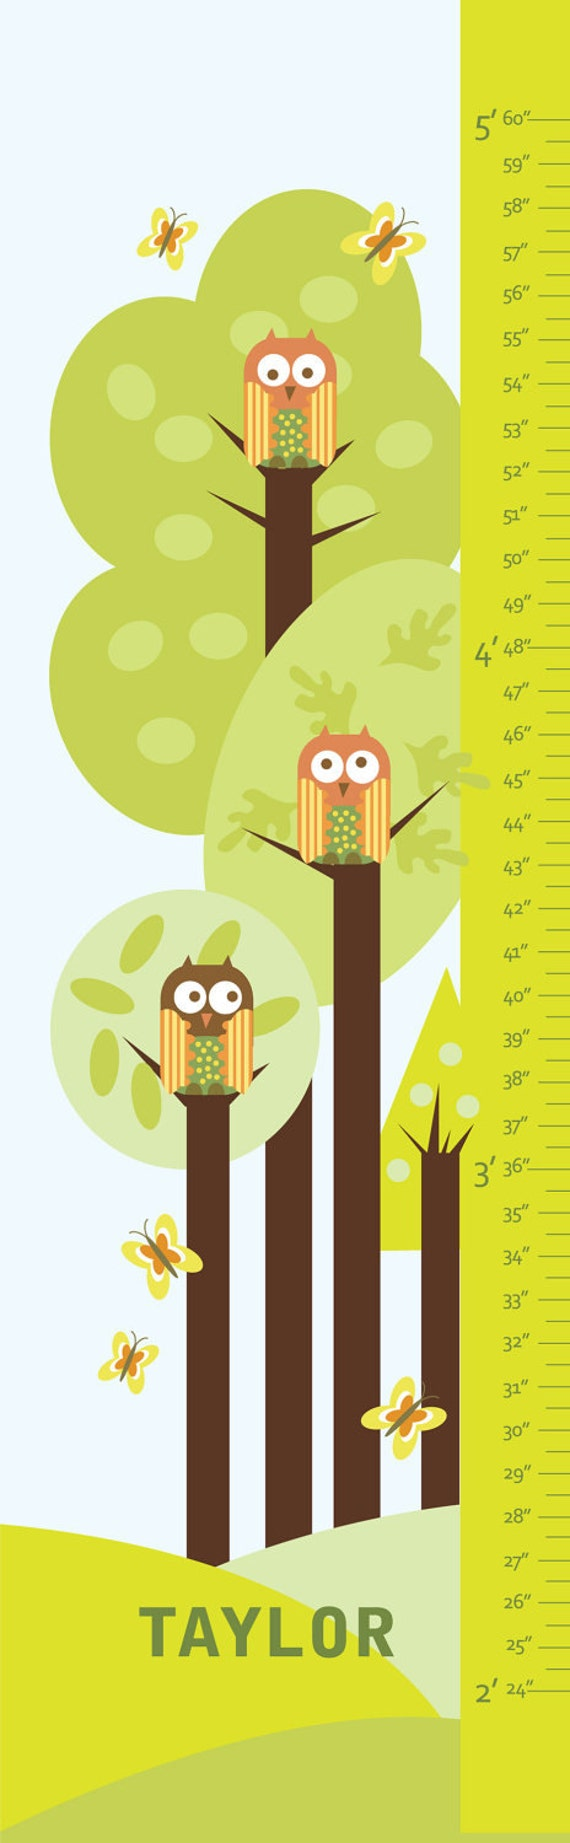 "Personalized Growth Chart Canvas- Forest and Owls- 13"" X42"" Inches - Free personalization"